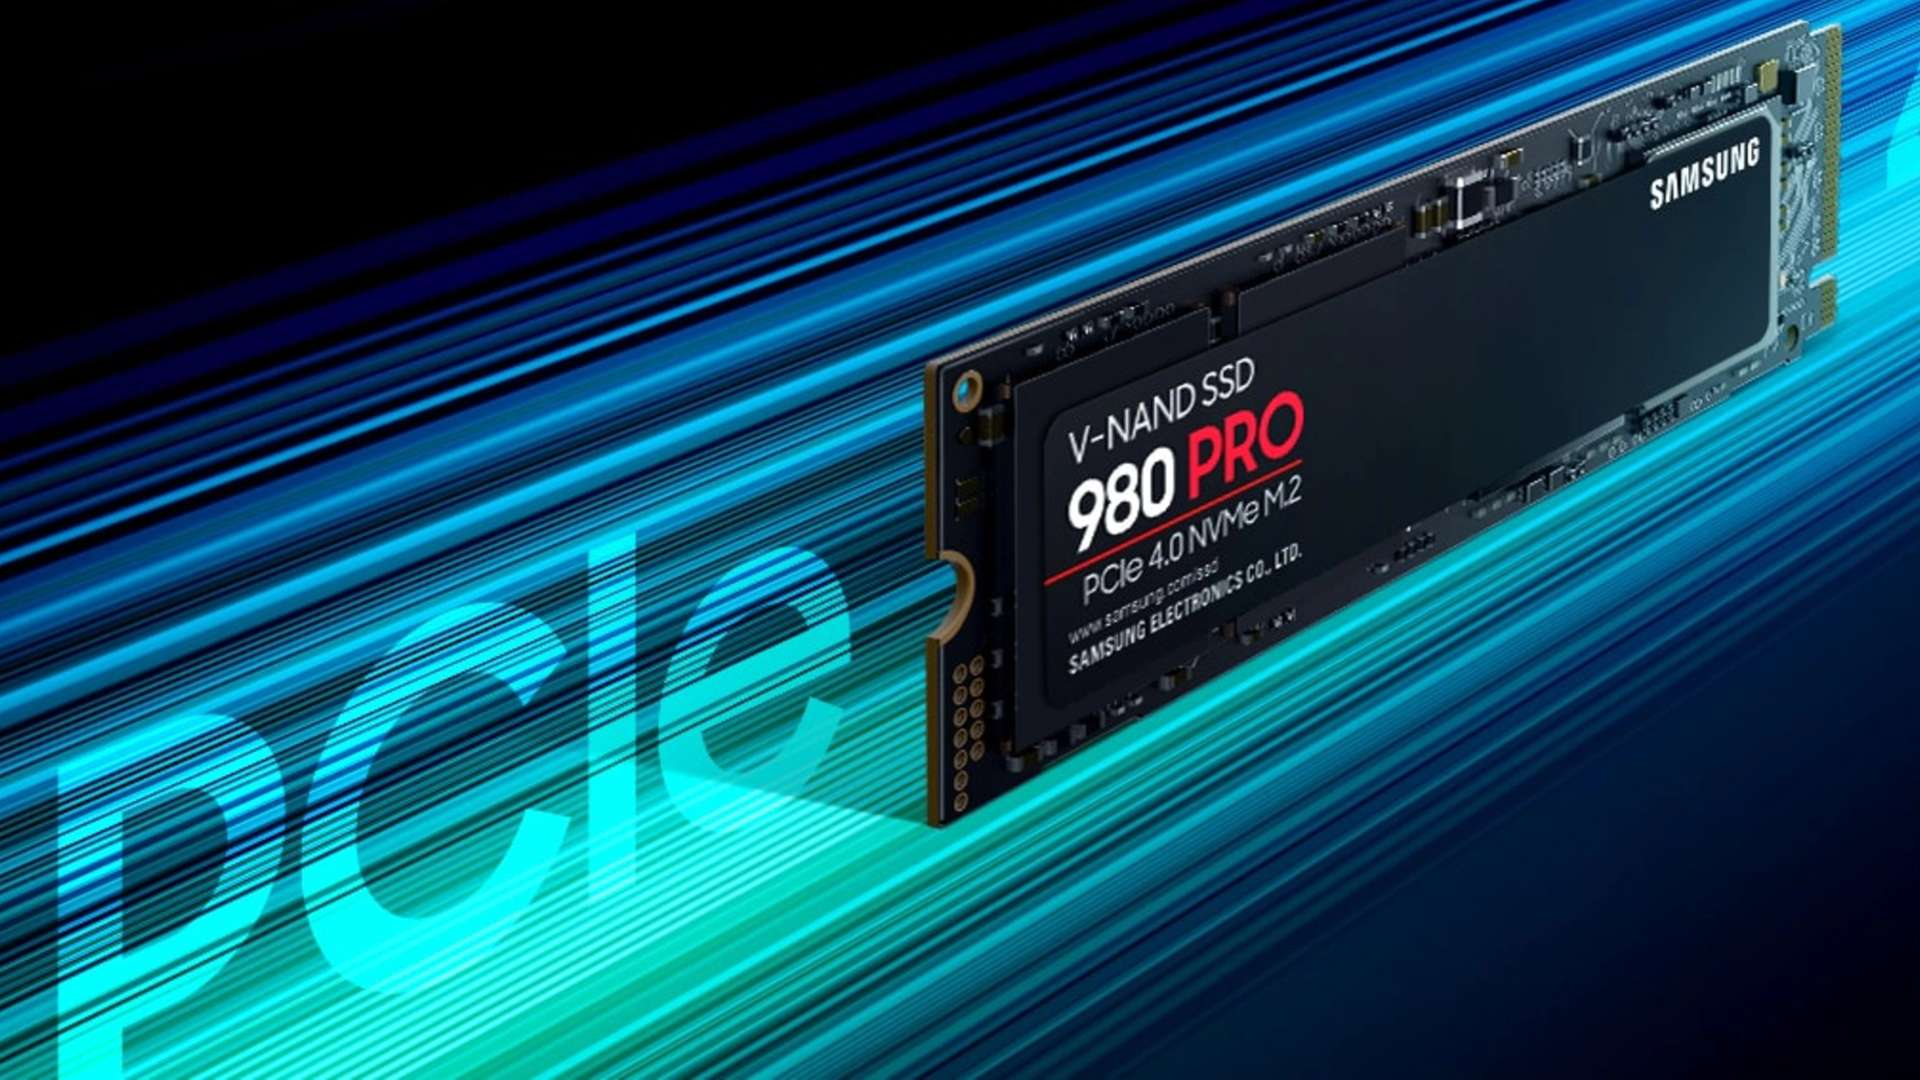 Samsung's 980 Pro PCIe 4 NVMe SSD is up to $60 cheaper